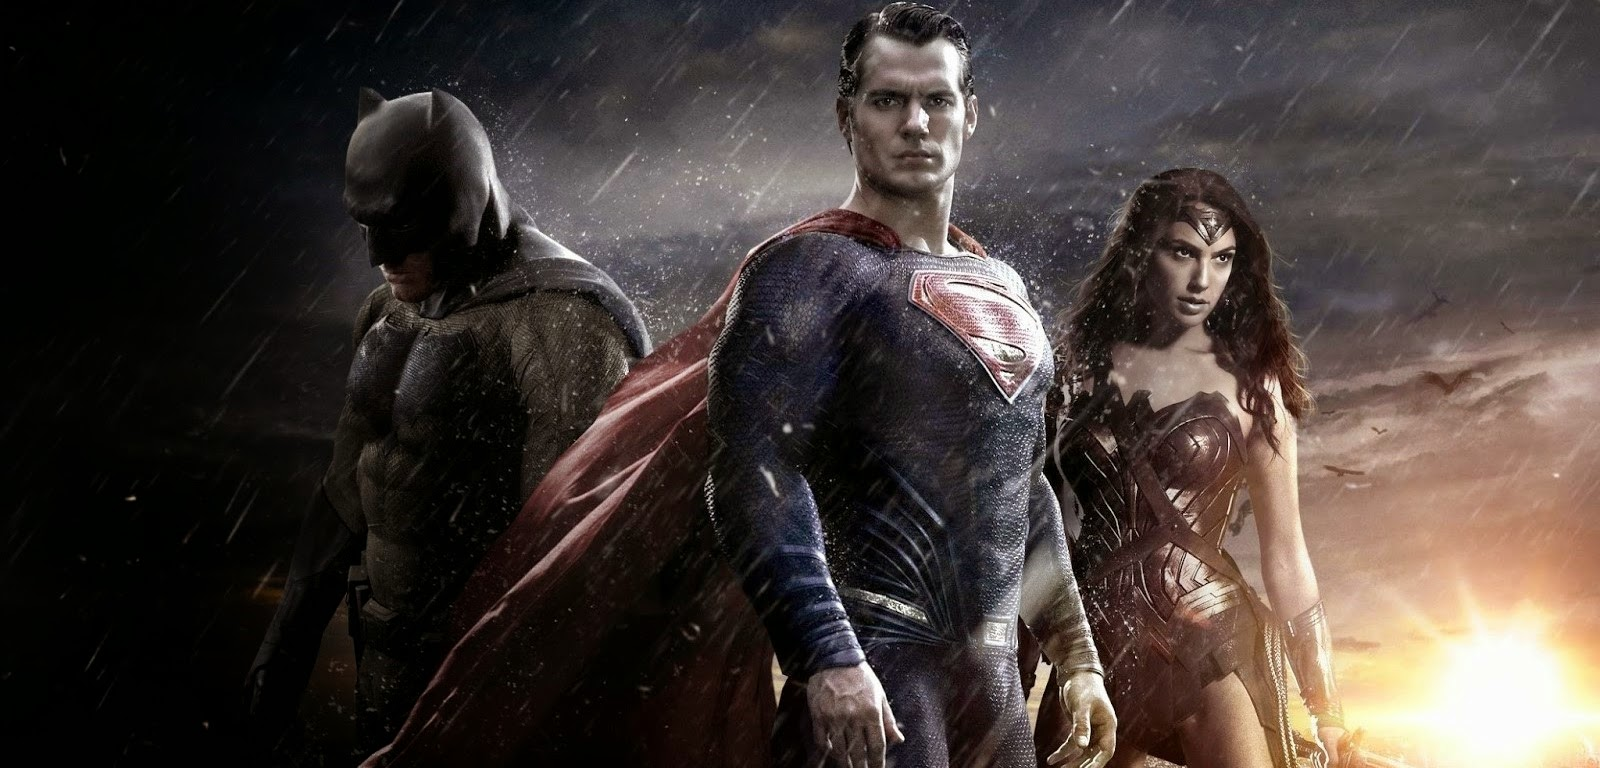 Warner Bros antecipa Batman v Superman: Dawn of Justice & anuncia datas de projetos futuros